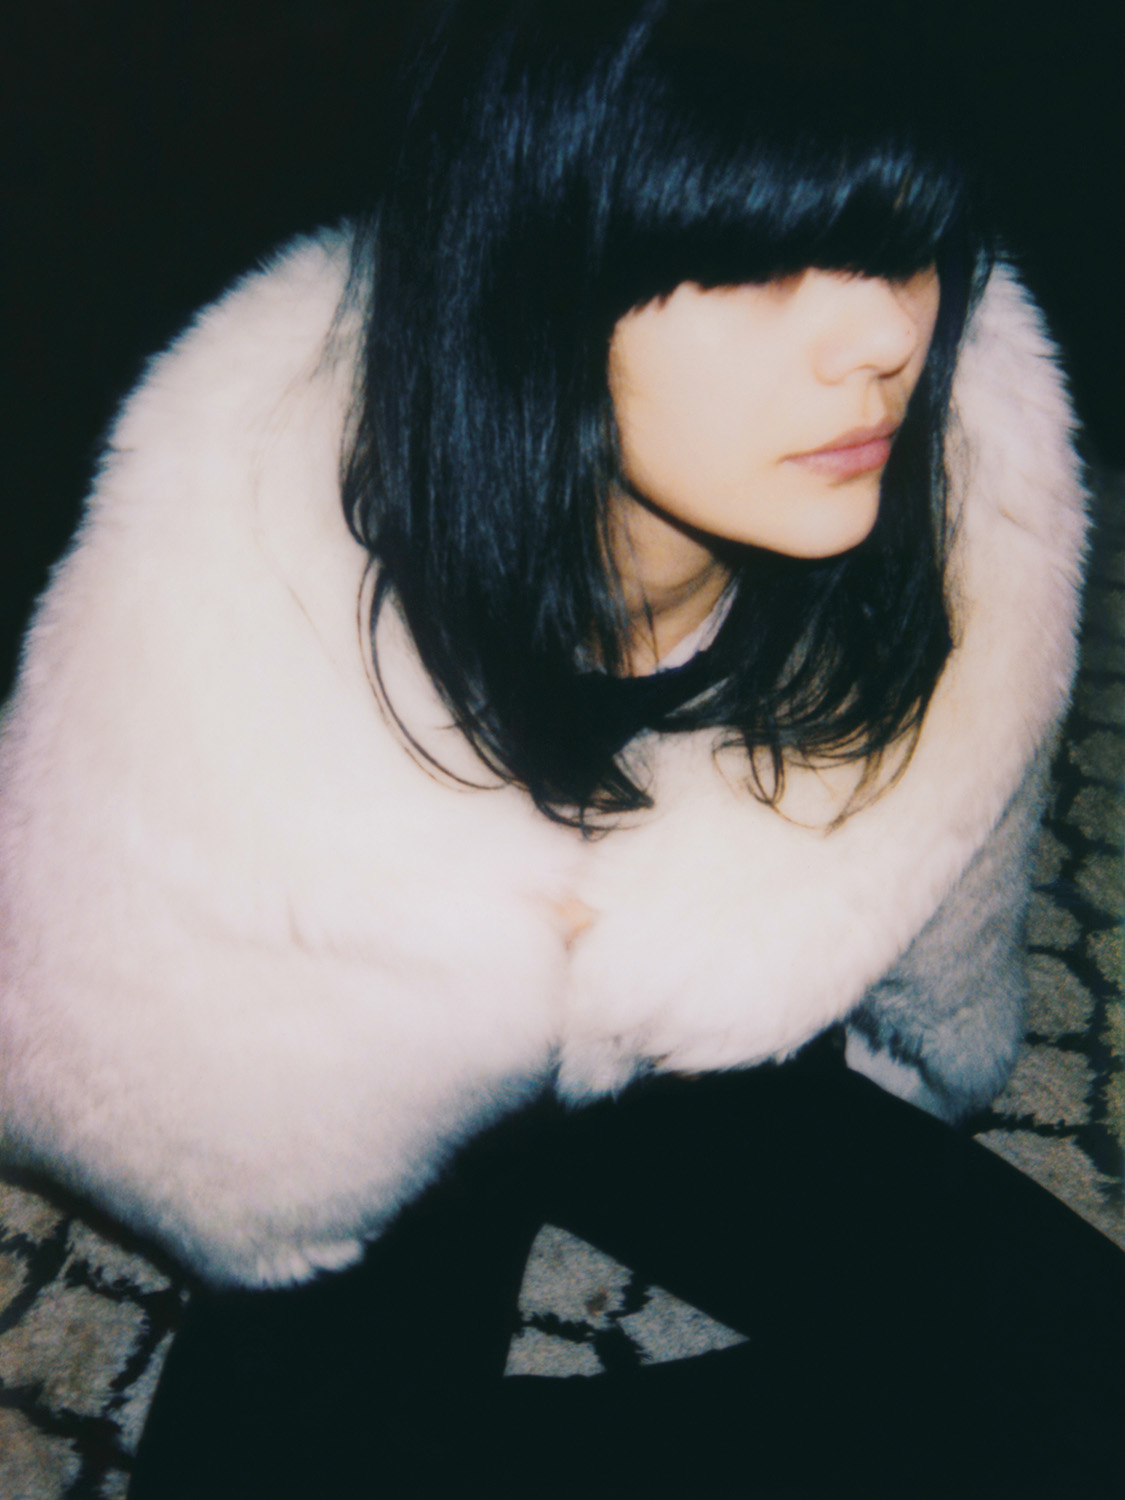 Bat For Lashes: Here comes the bride